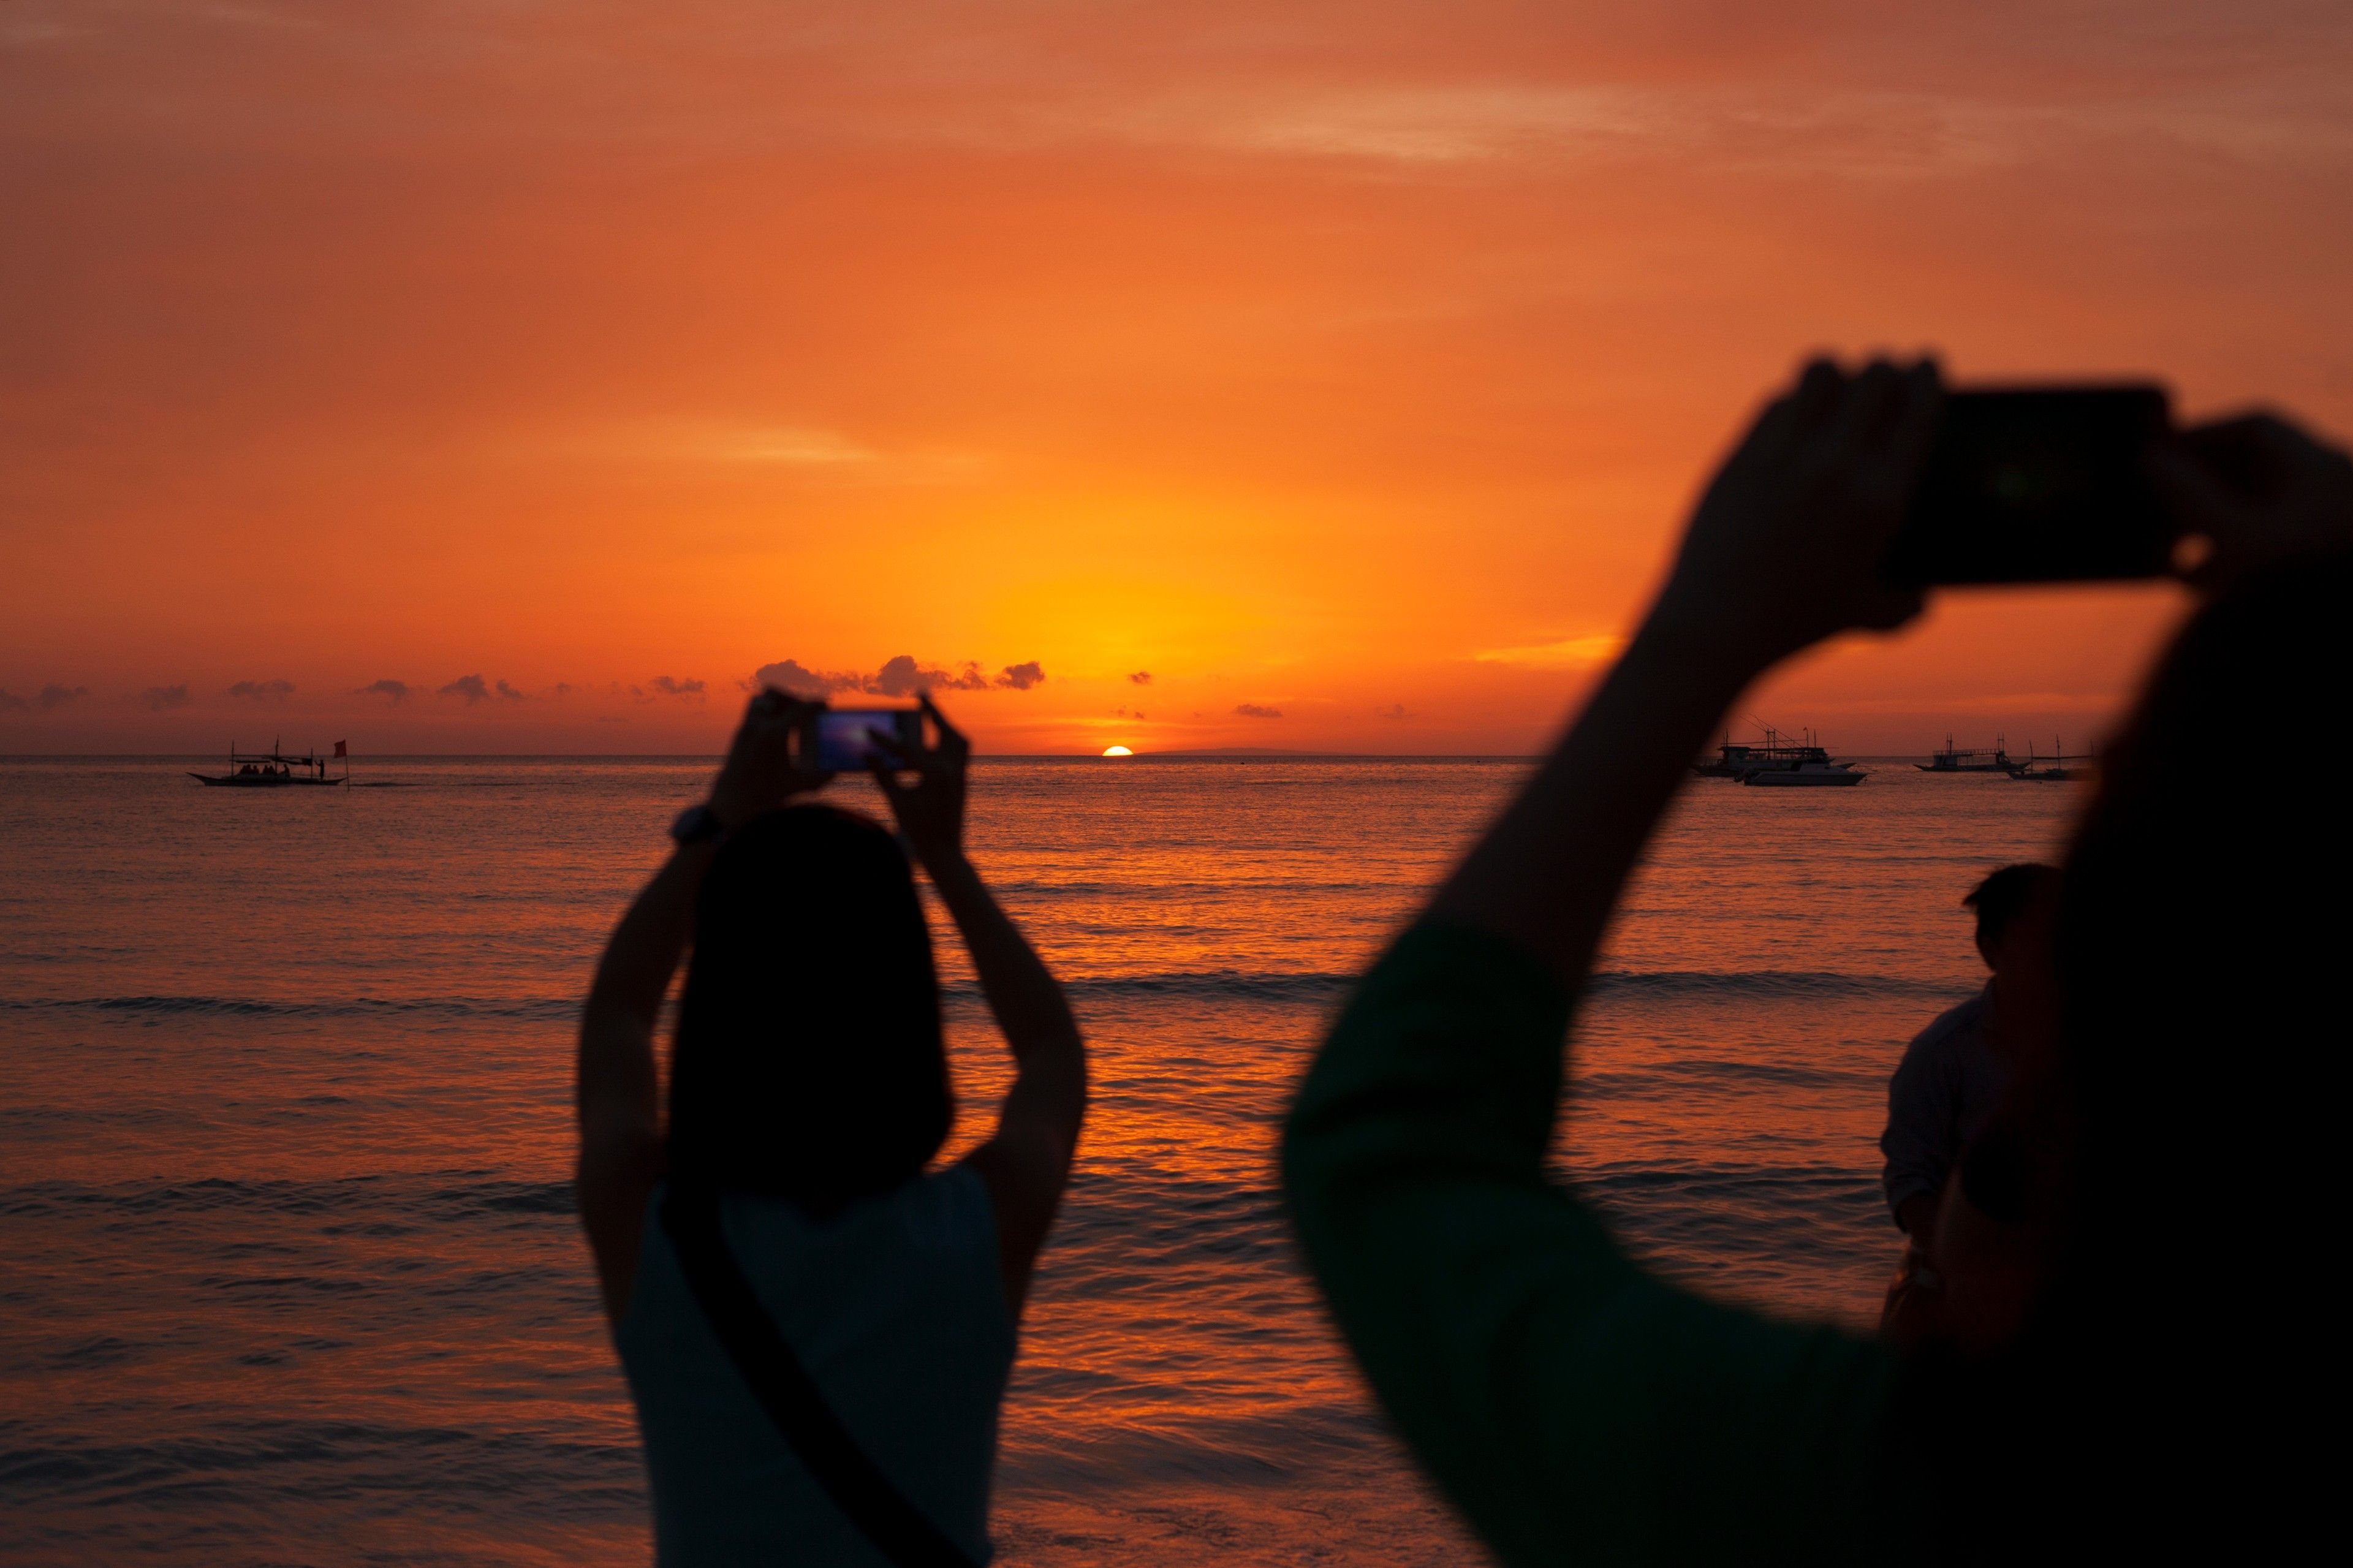 Photo of the Boracay sunset with bystanders taking picture using their phones